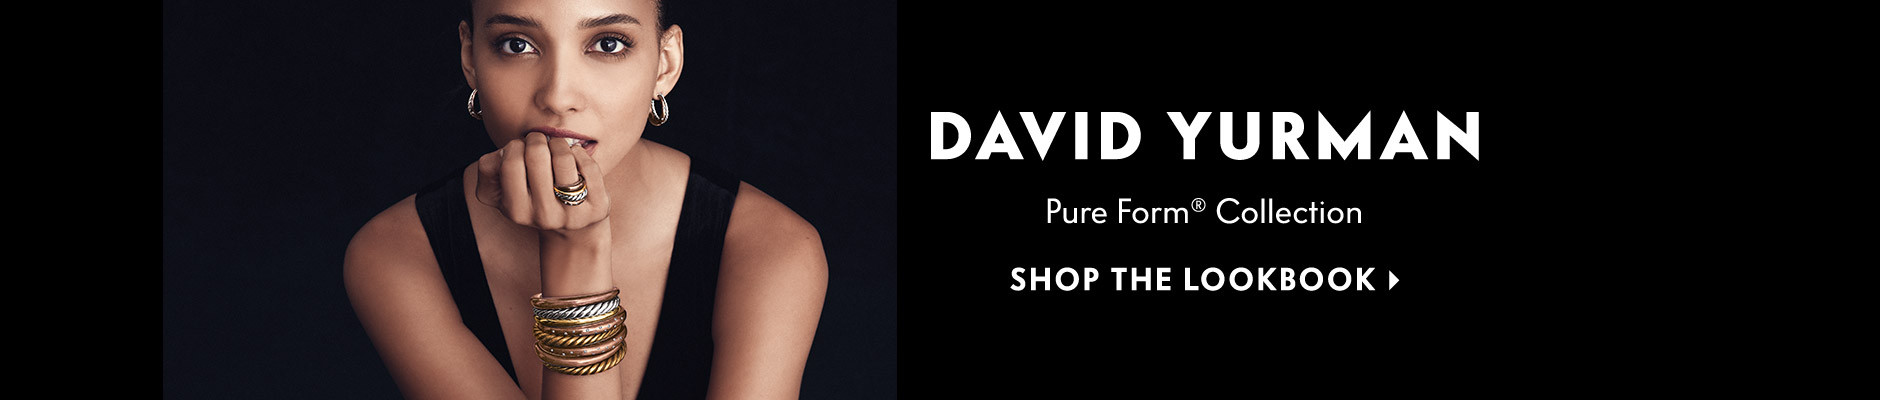 David Yurman Lookbook